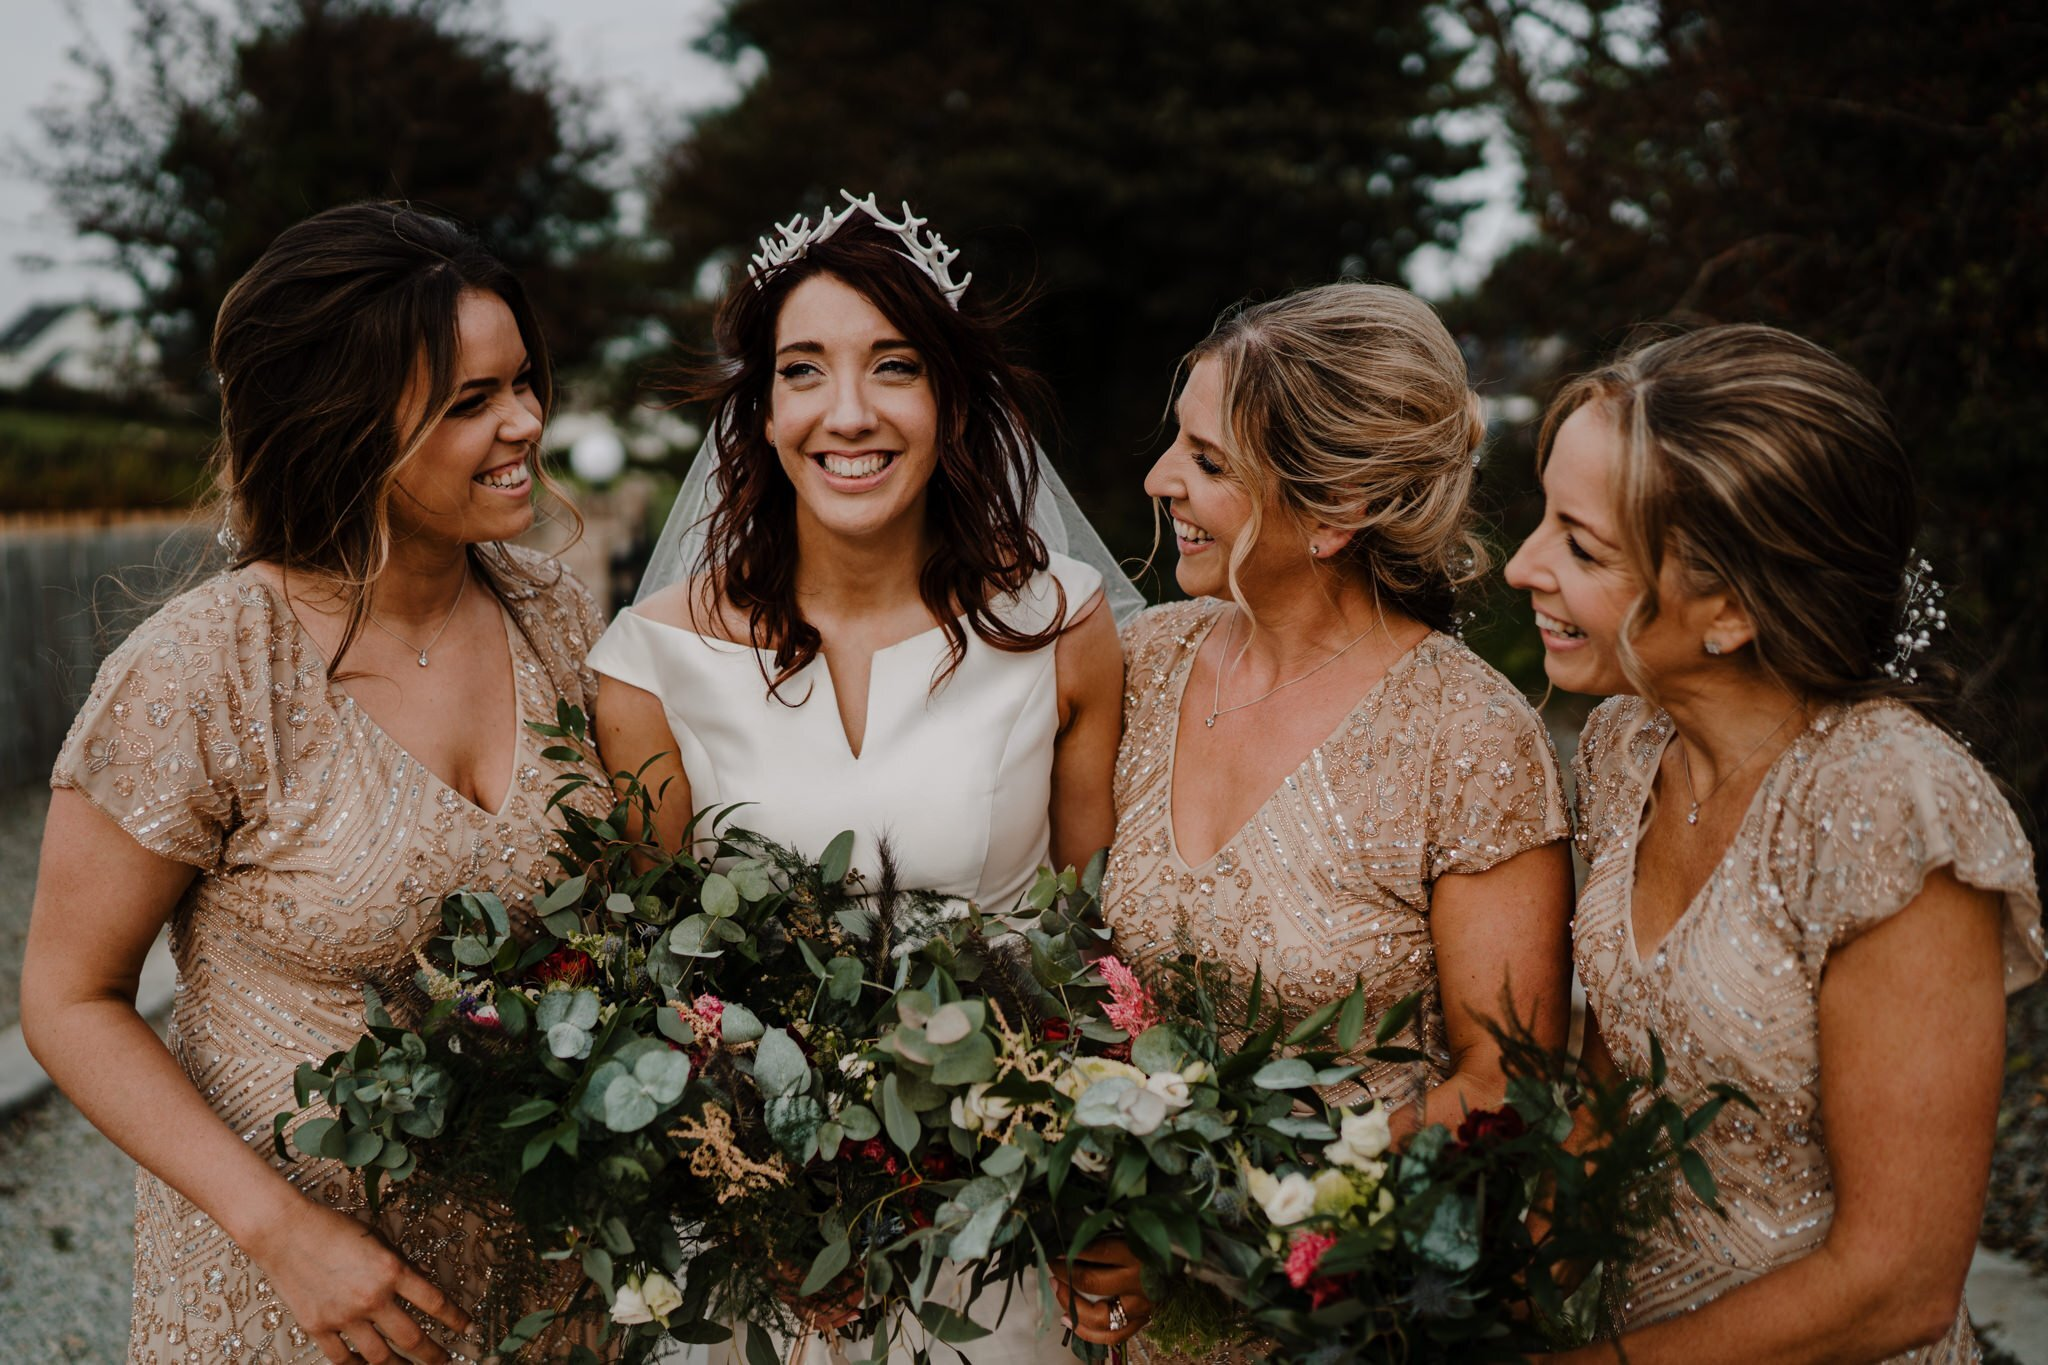 Bride-tribe-bridesmaids-Donegal-monsoon-dresses-tiger-lily-florist